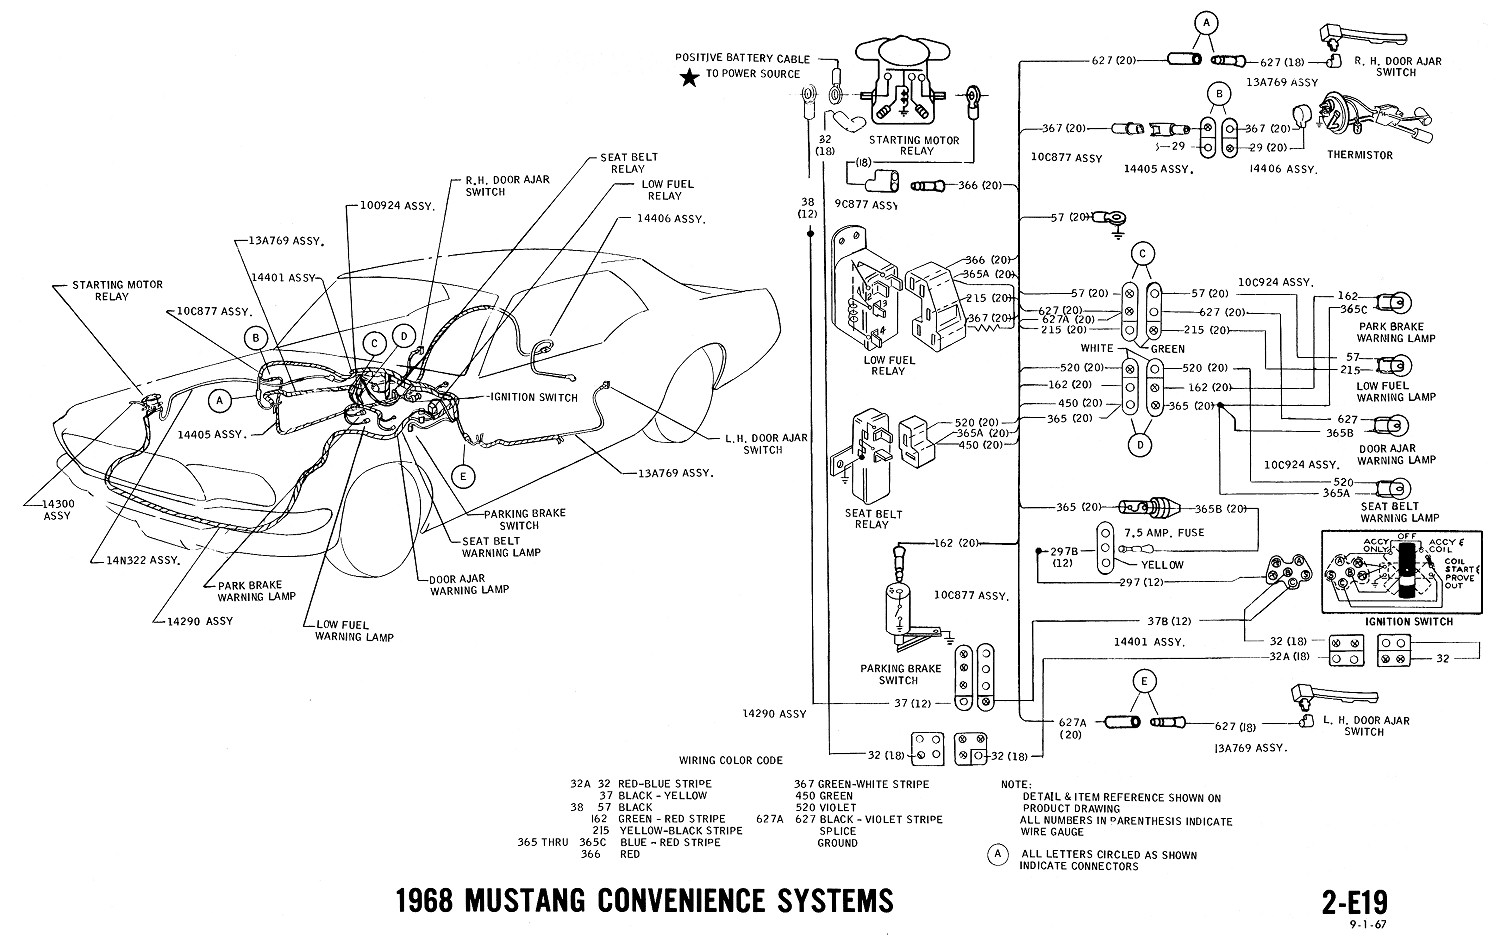 E19 1968 mustang wiring diagrams evolving software Multi Speed Blower Motor Wiring at eliteediting.co